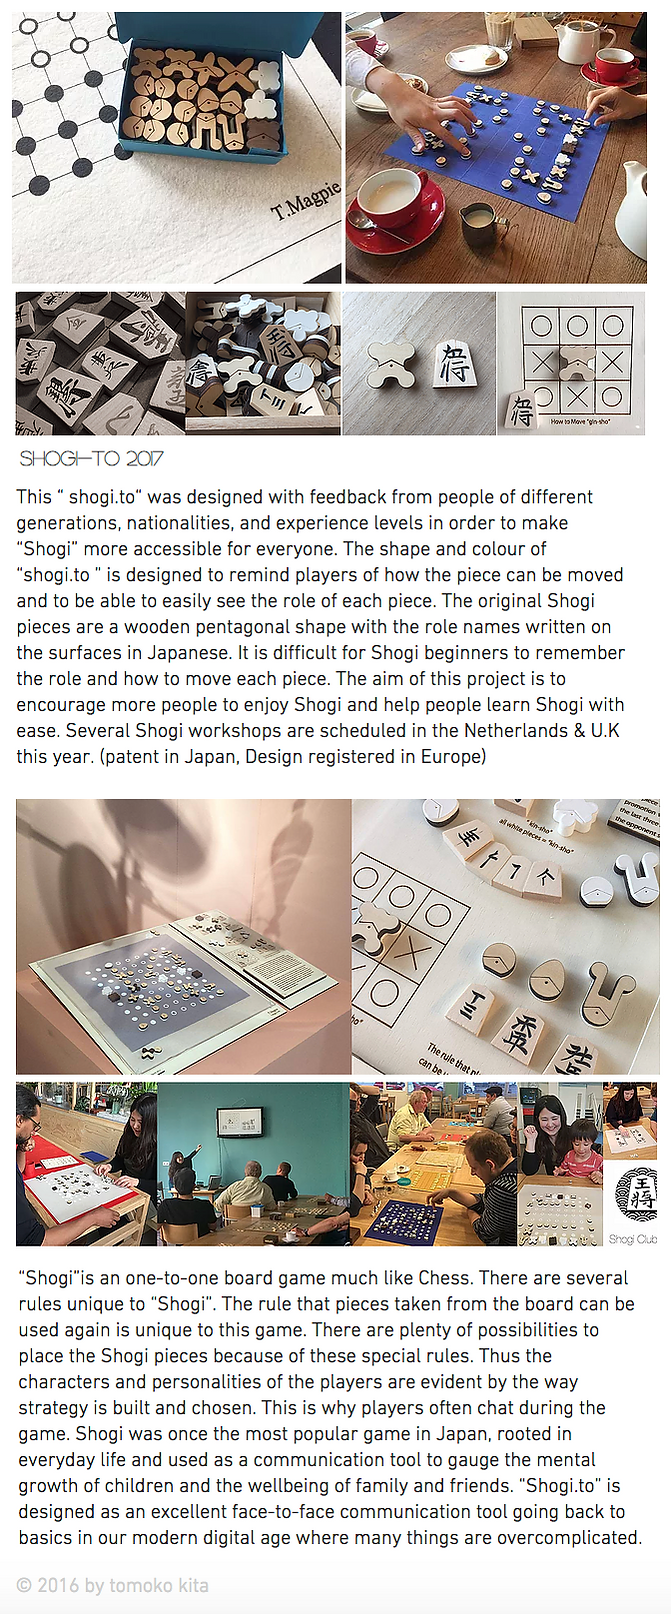 aboutshogitoproject-tmagpie.png